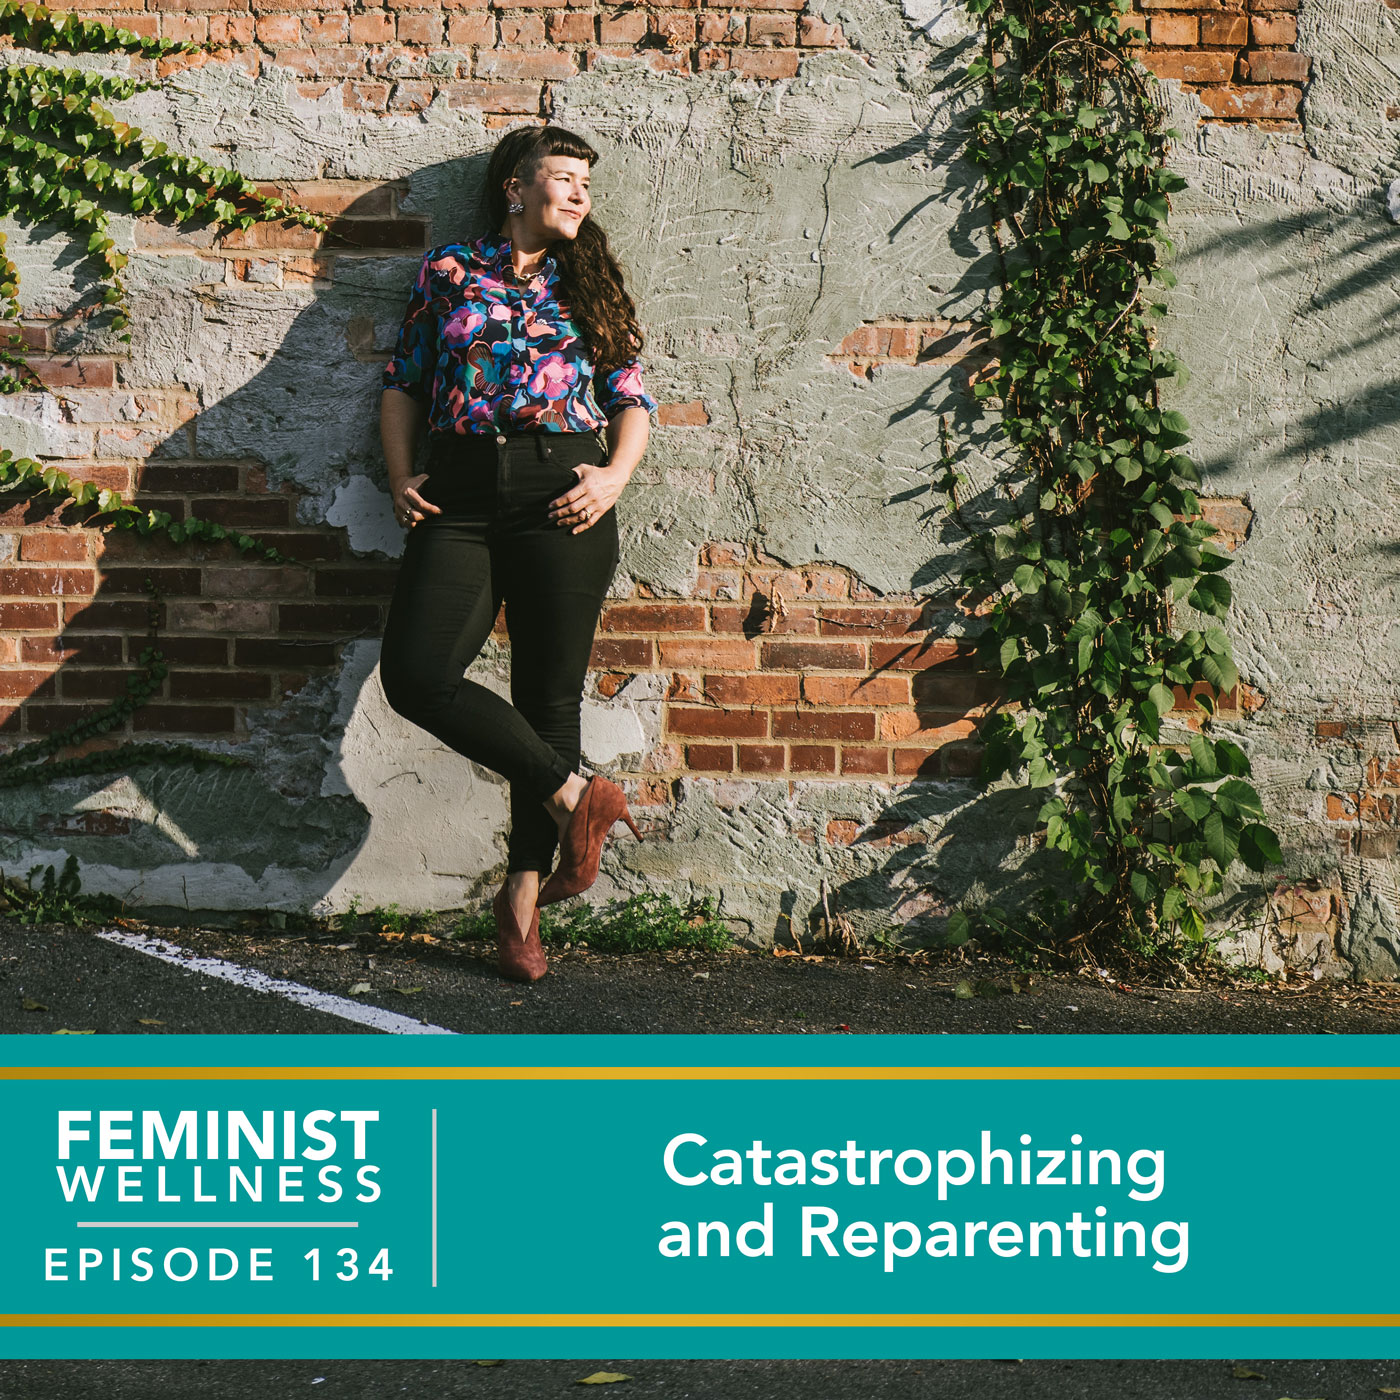 Feminist Wellness with Victoria Albina   Catastrophizing and Reparenting